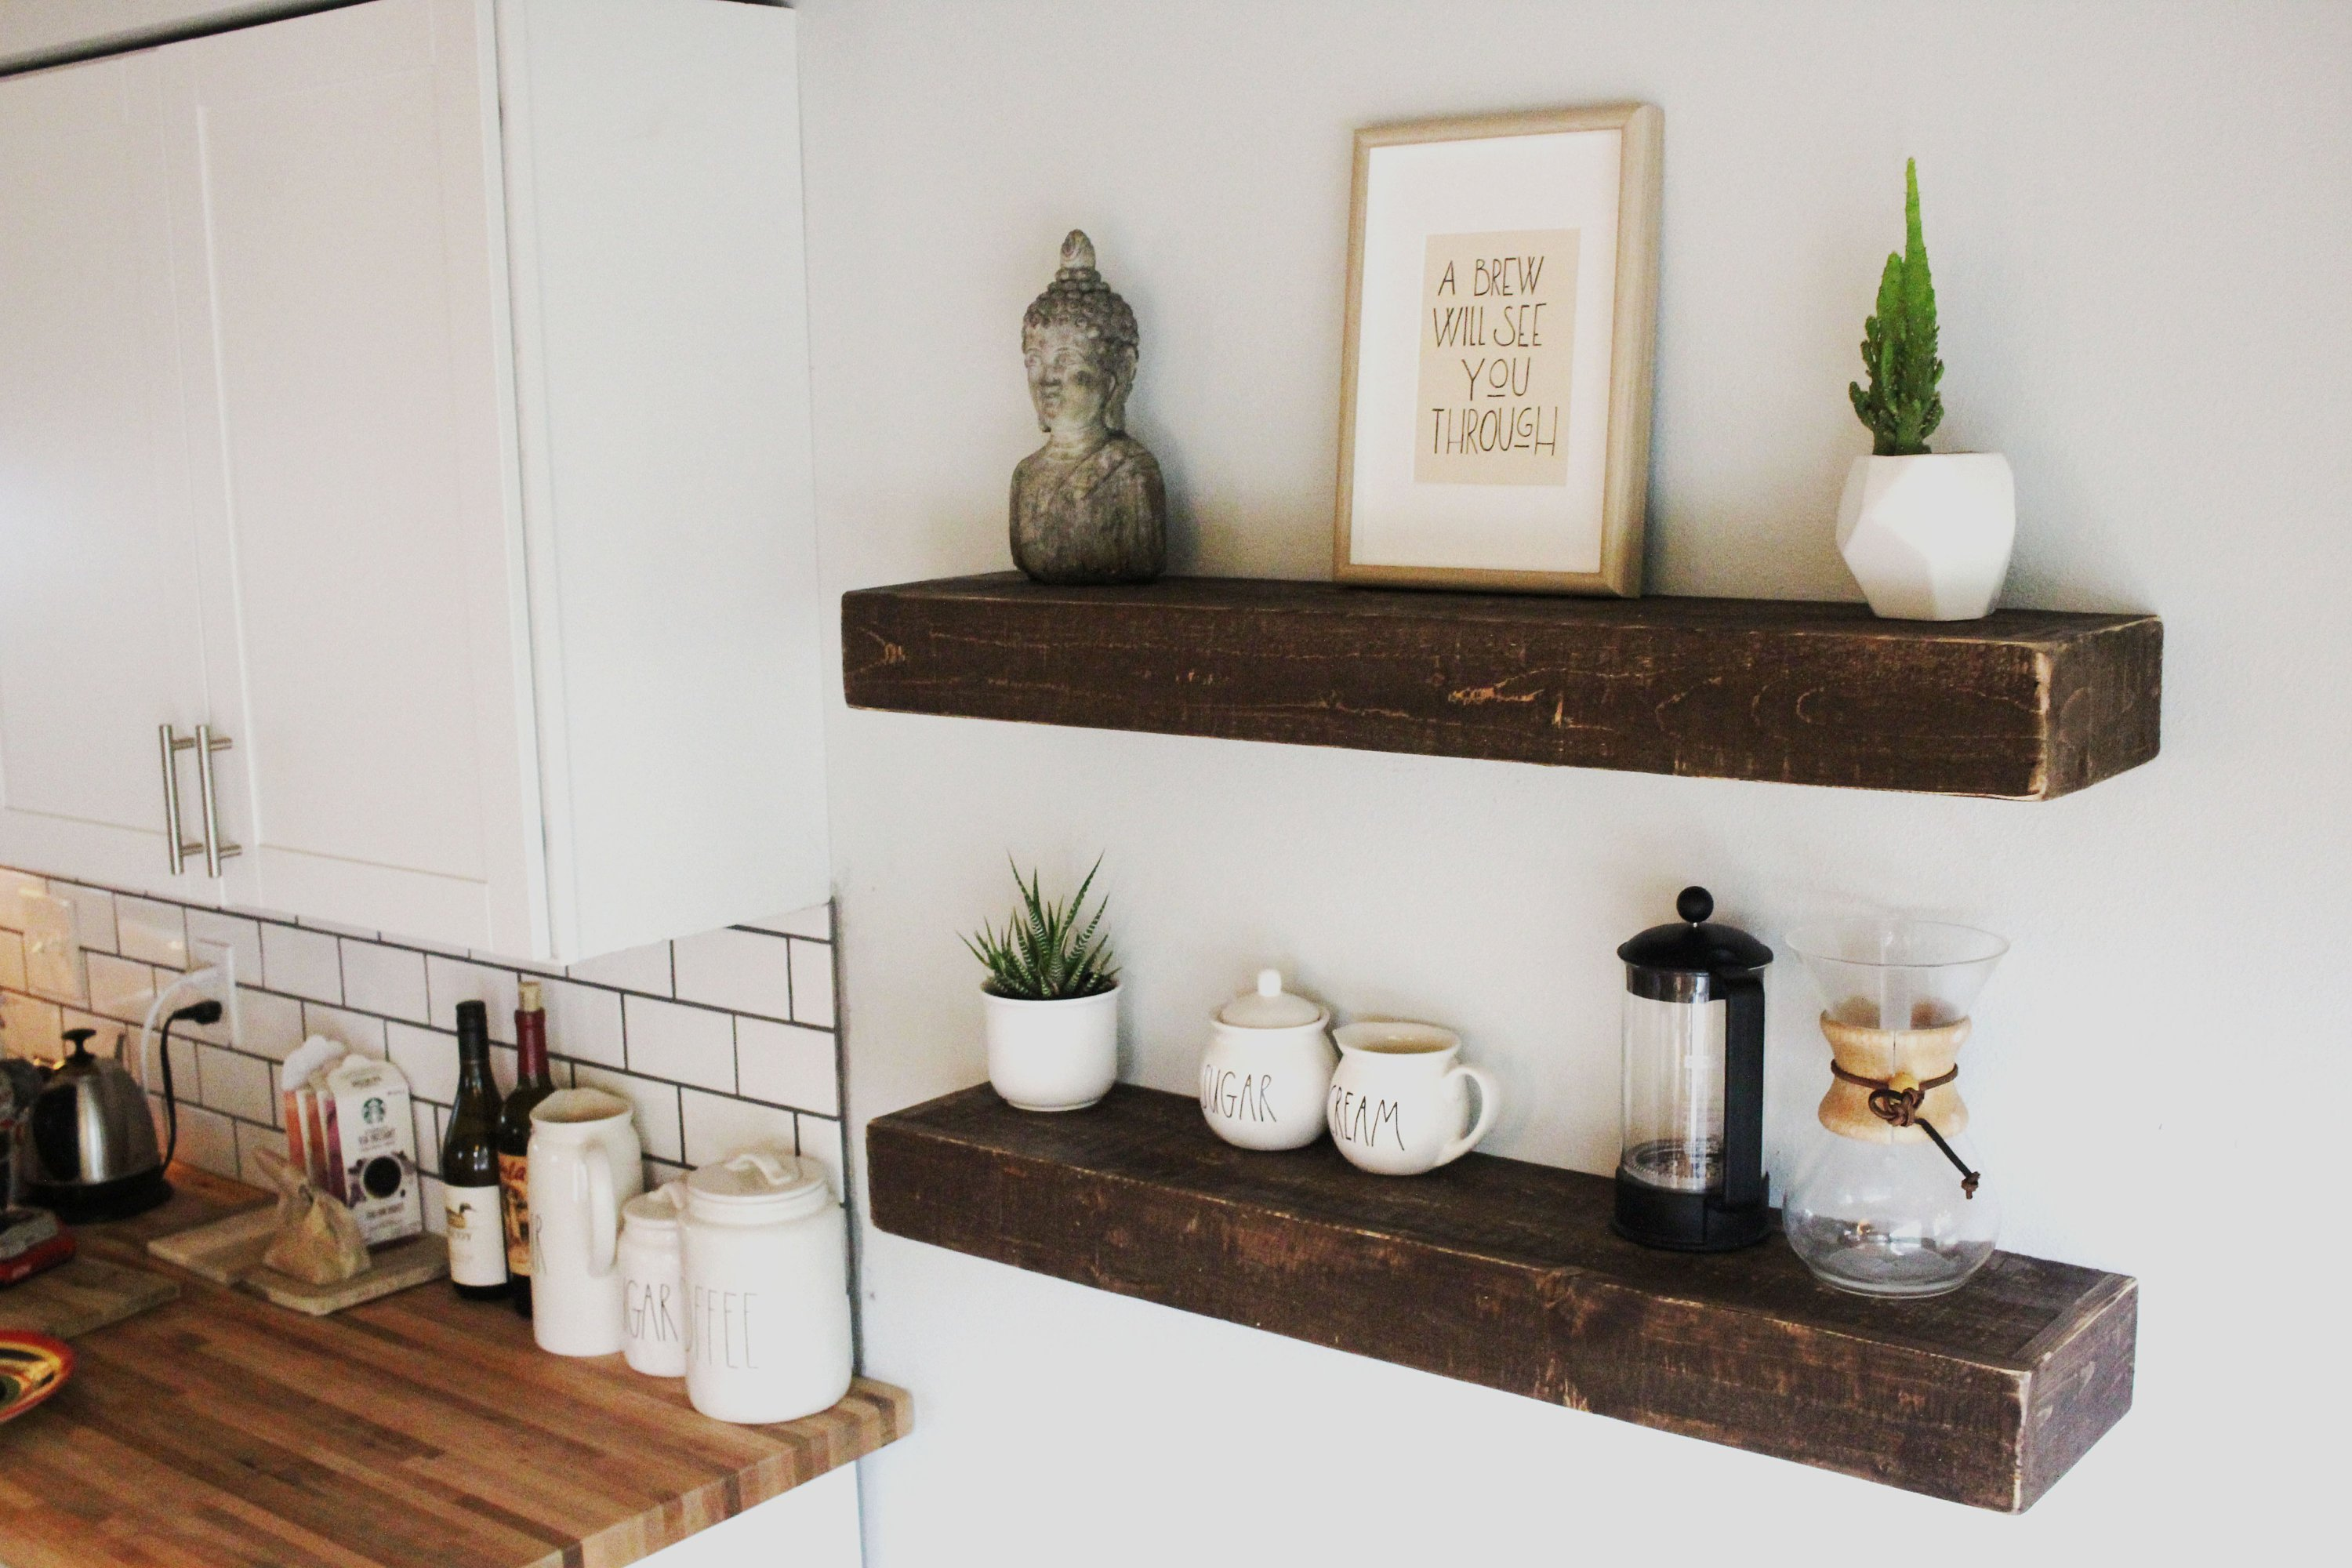 rustic wood floating shelves fullxfull wall shelf stereo dvd player mount bracket small toilet room ideas mounted box ikea peel and stick tile over concrete single bathroom vanity